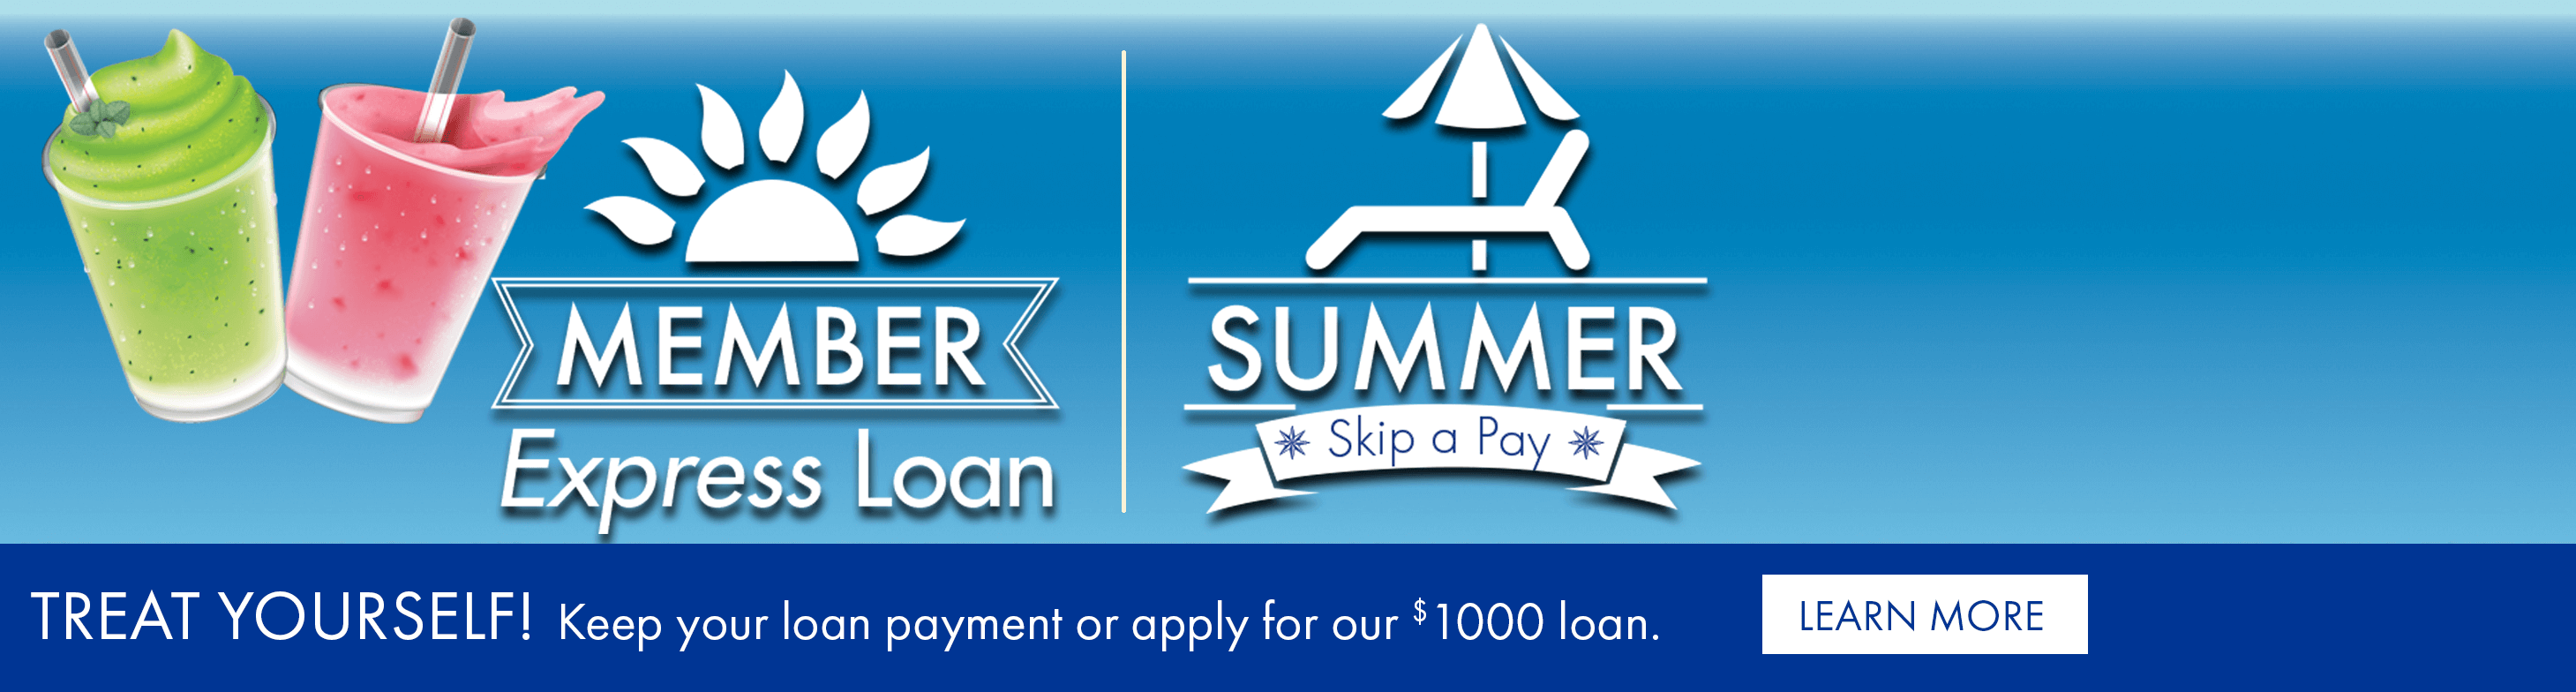 Treat yourself! Keep your loan payment or apply for our $1000 loan.